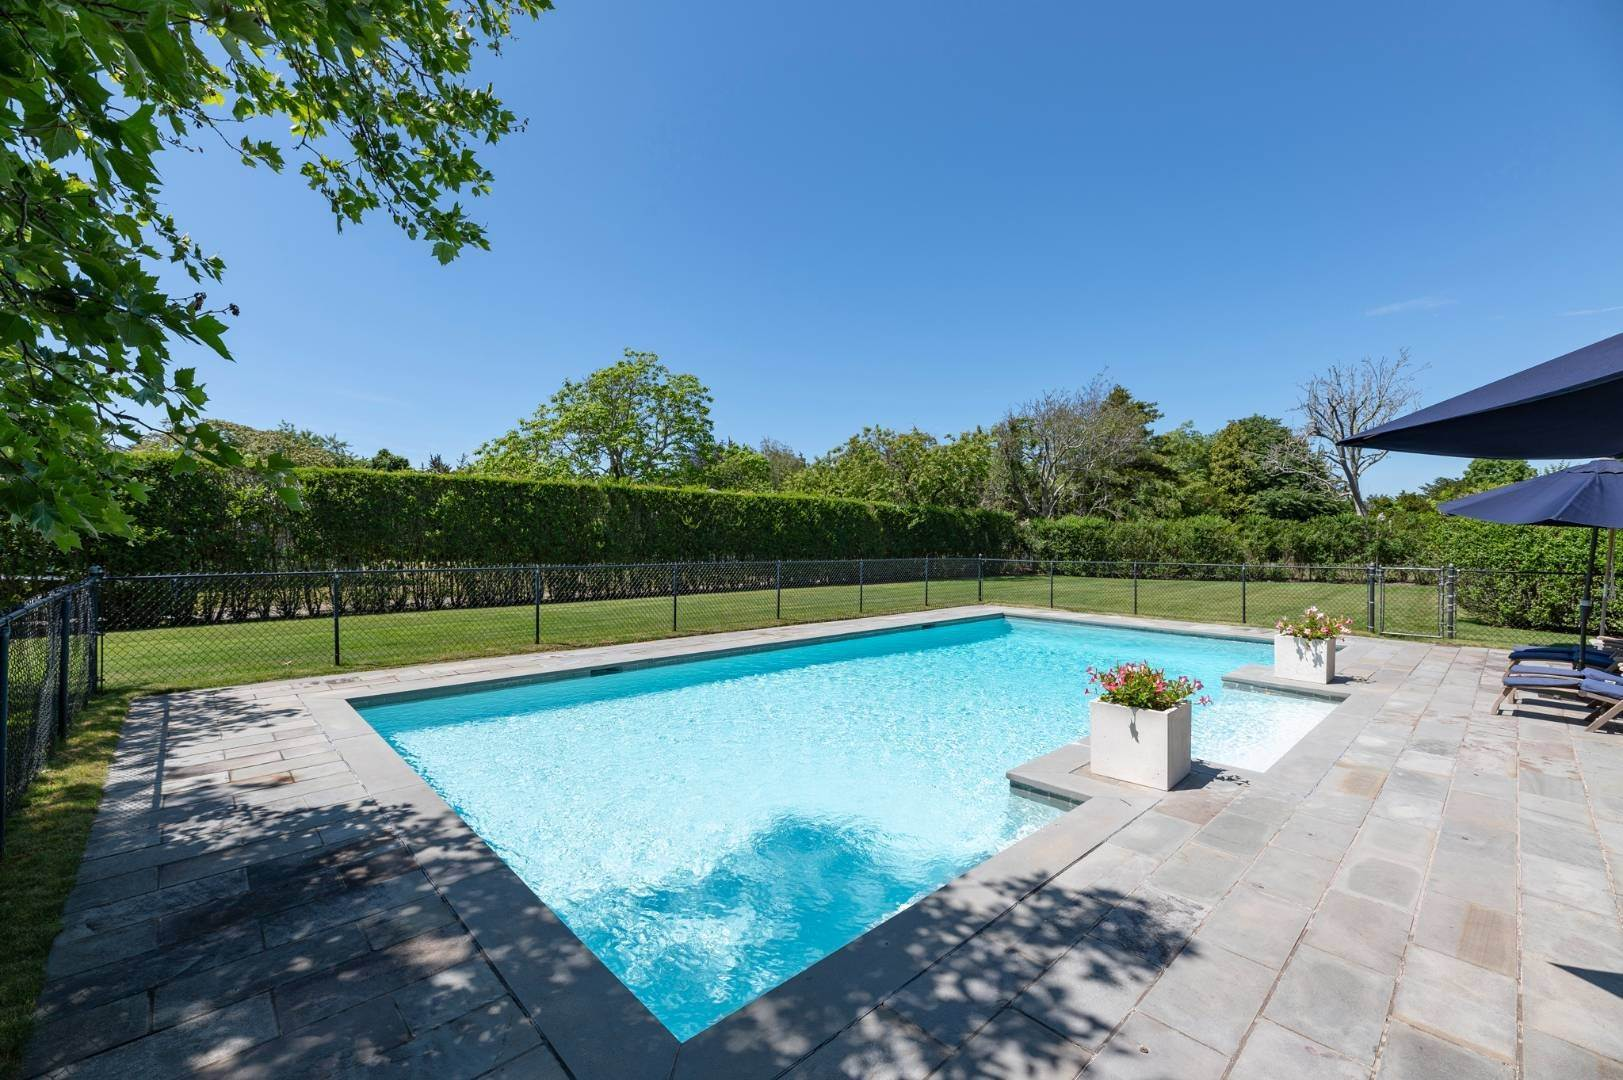 2. Single Family Home at Westhampton Beach Rental With A Heated Pool 19 Bayfield Lane, Westhampton Beach Village, NY 11978